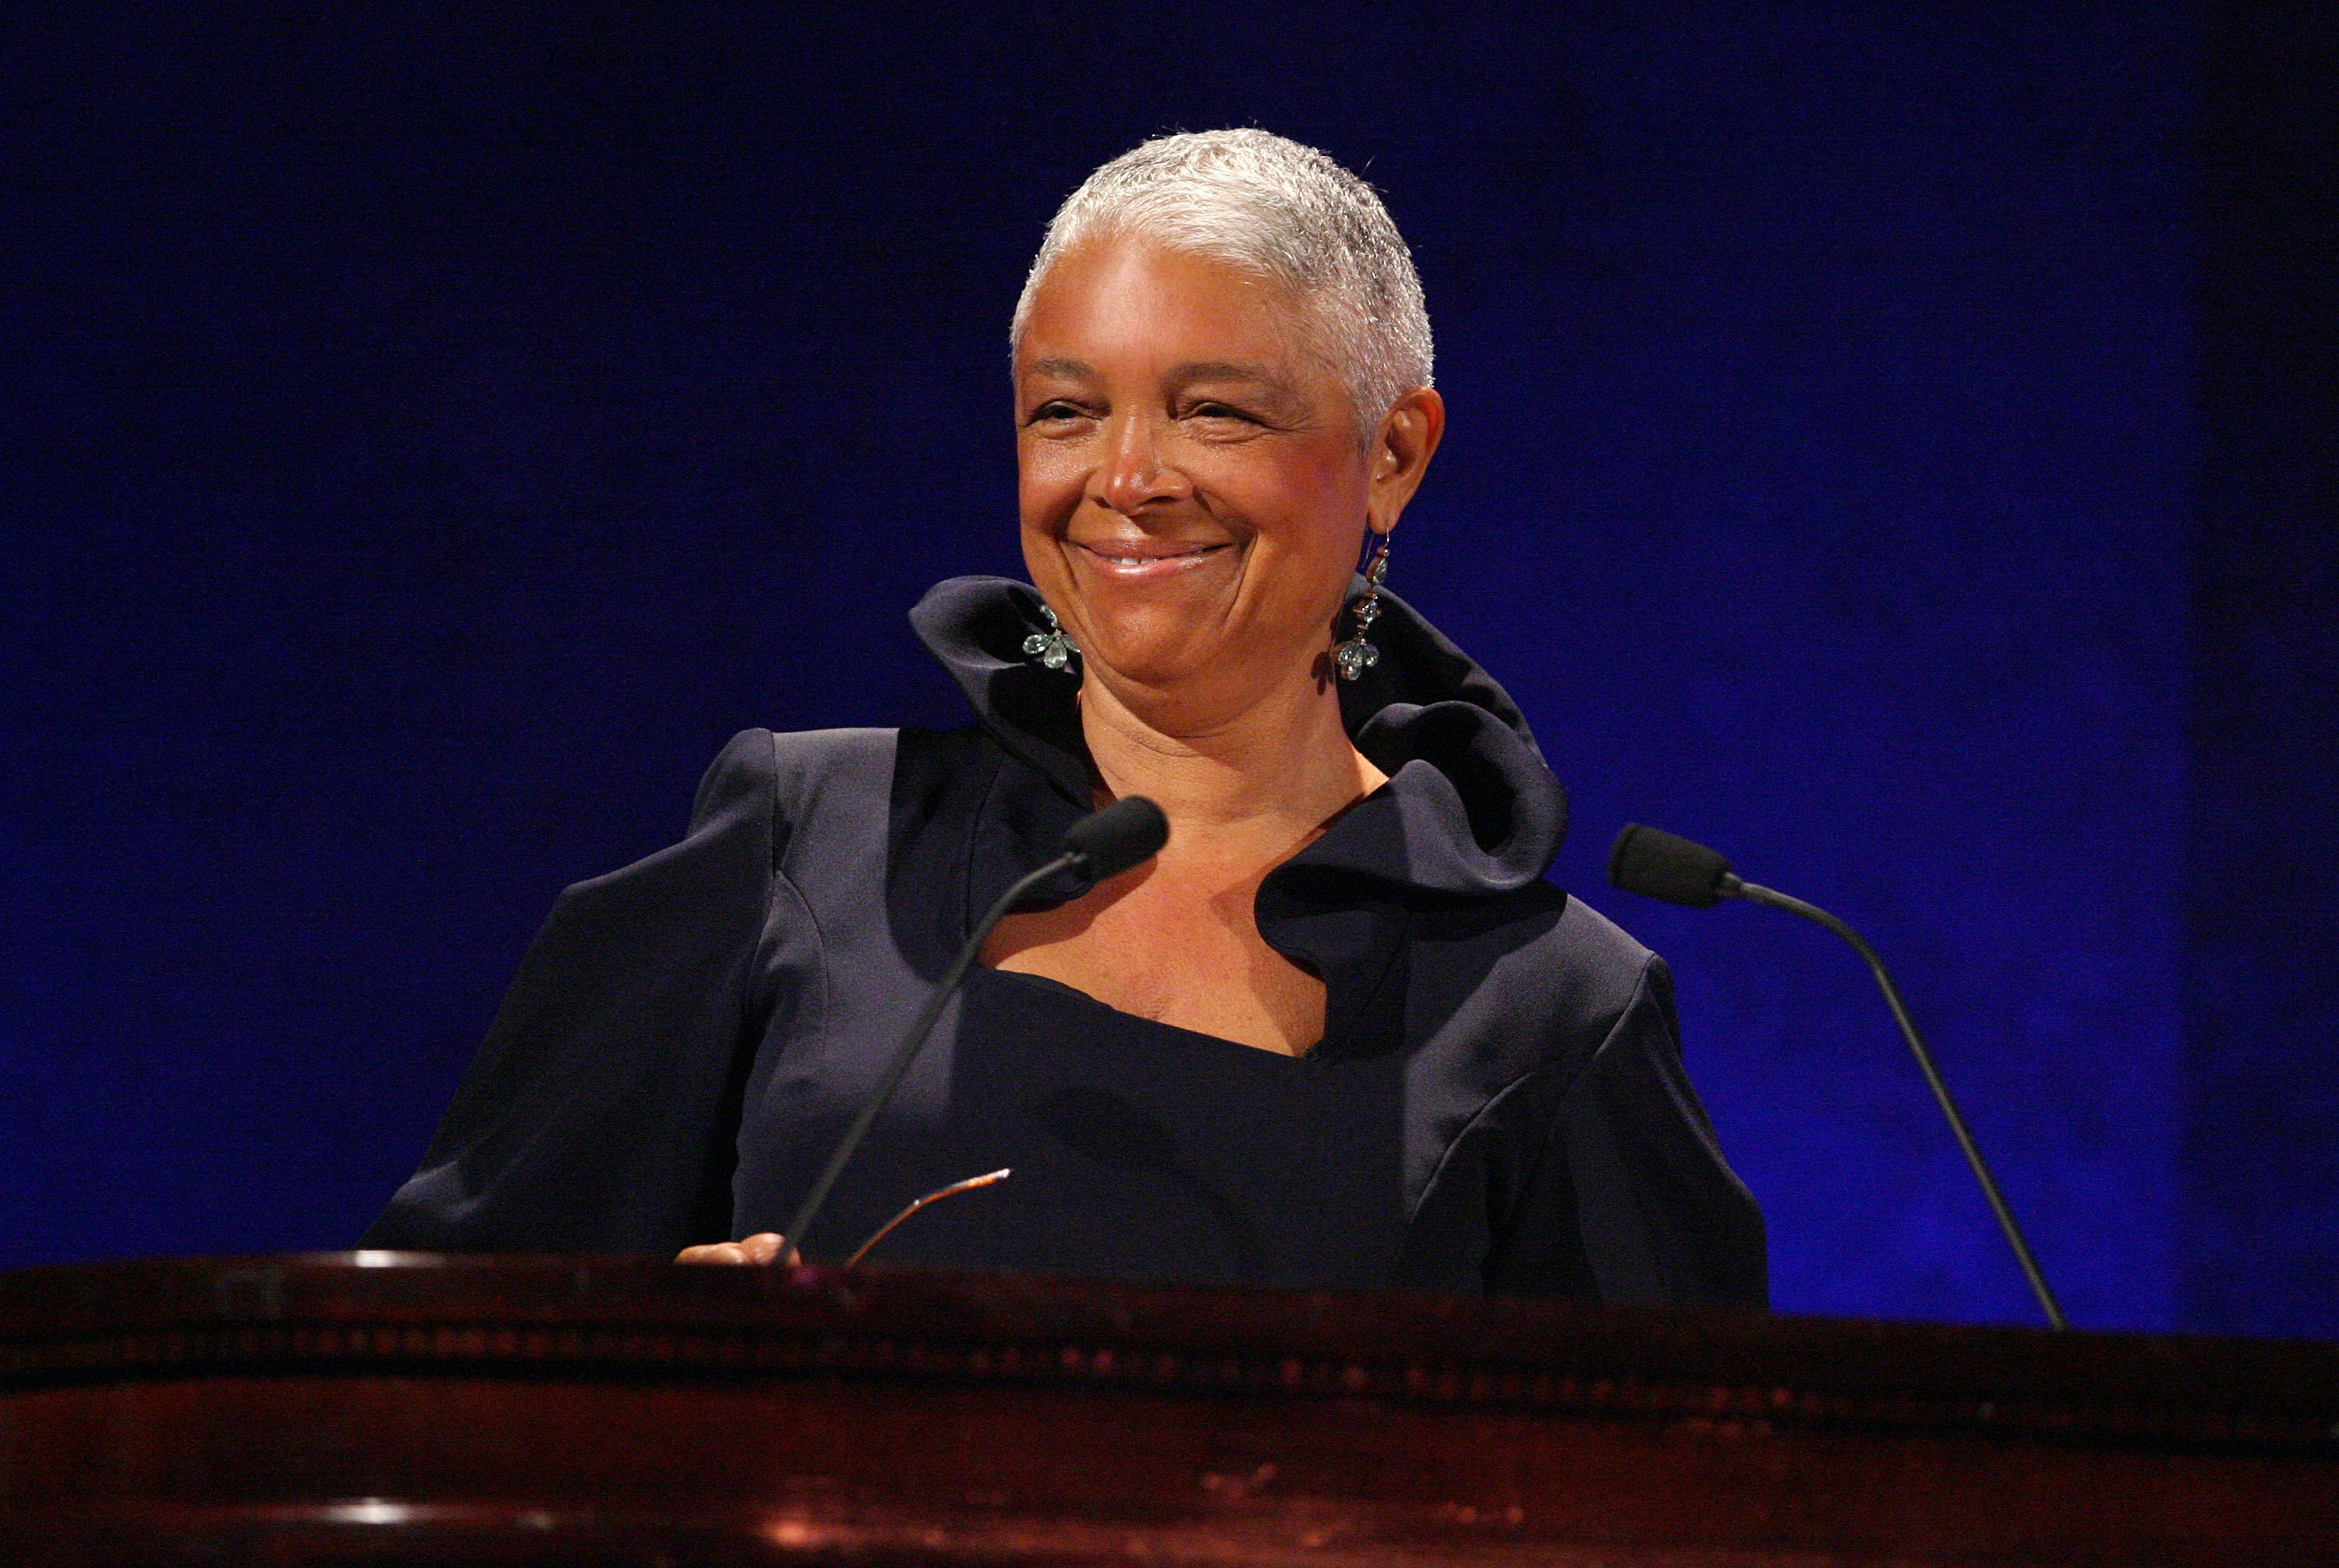 Dr. Camille Cosby speaks on stage at the 35th Anniversary of the Jackie Robinson Foundation hosted by Bill Cosby at the Waldorf Astoria hotel on March 3, 2008, in New York City. | Source: Getty Images.